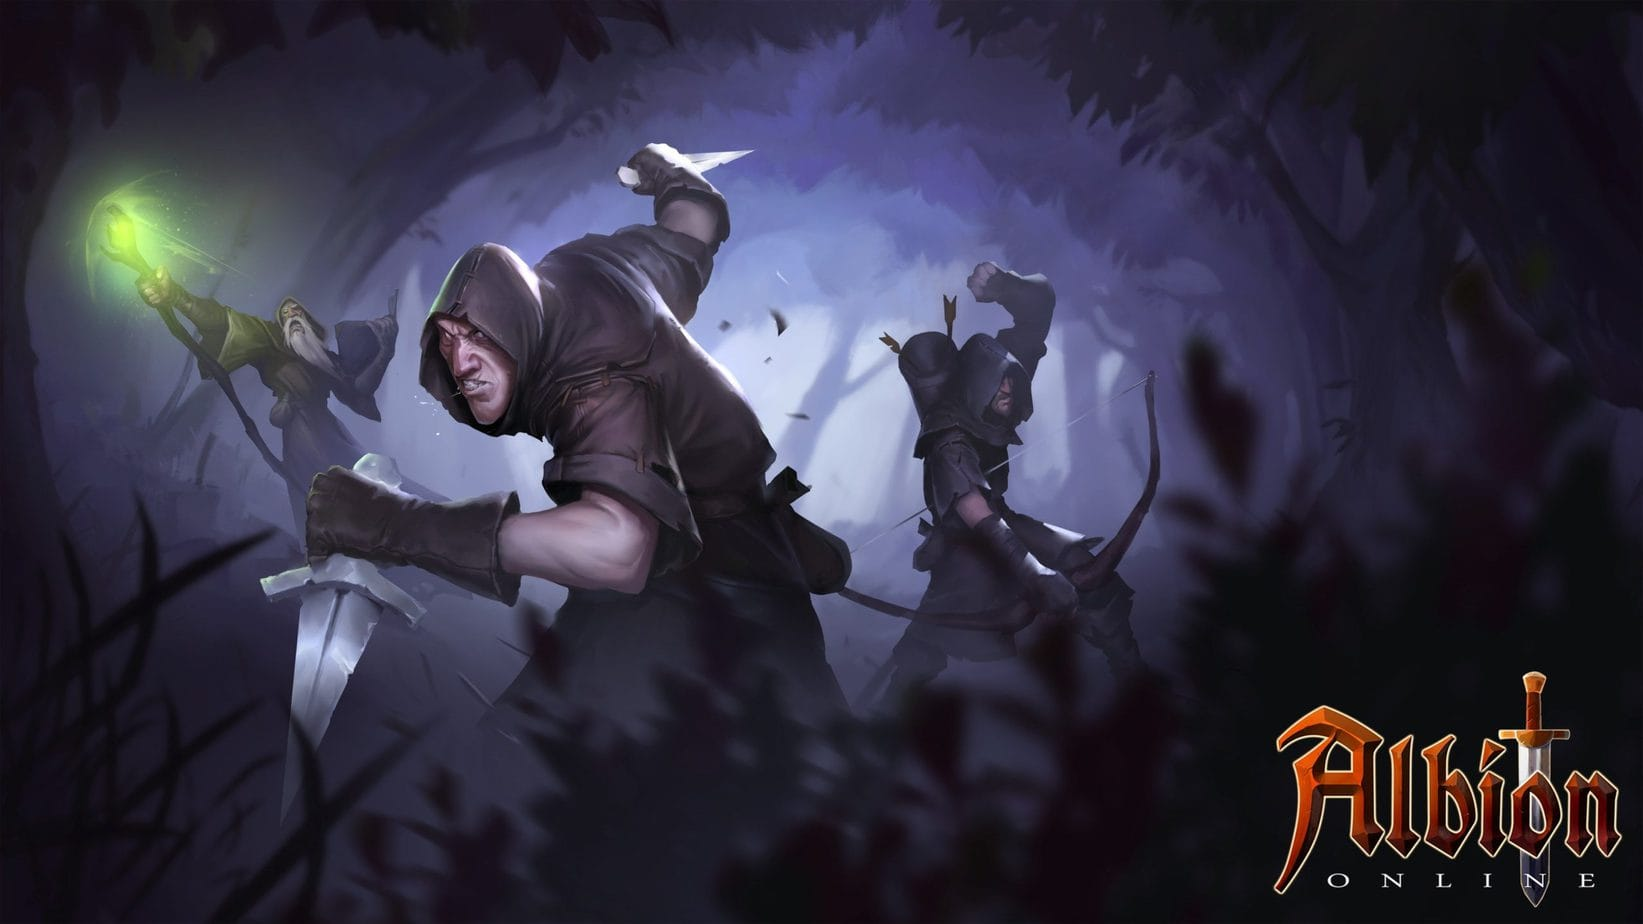 Albion Online Guild Player Stole Billion Of In Game Assets